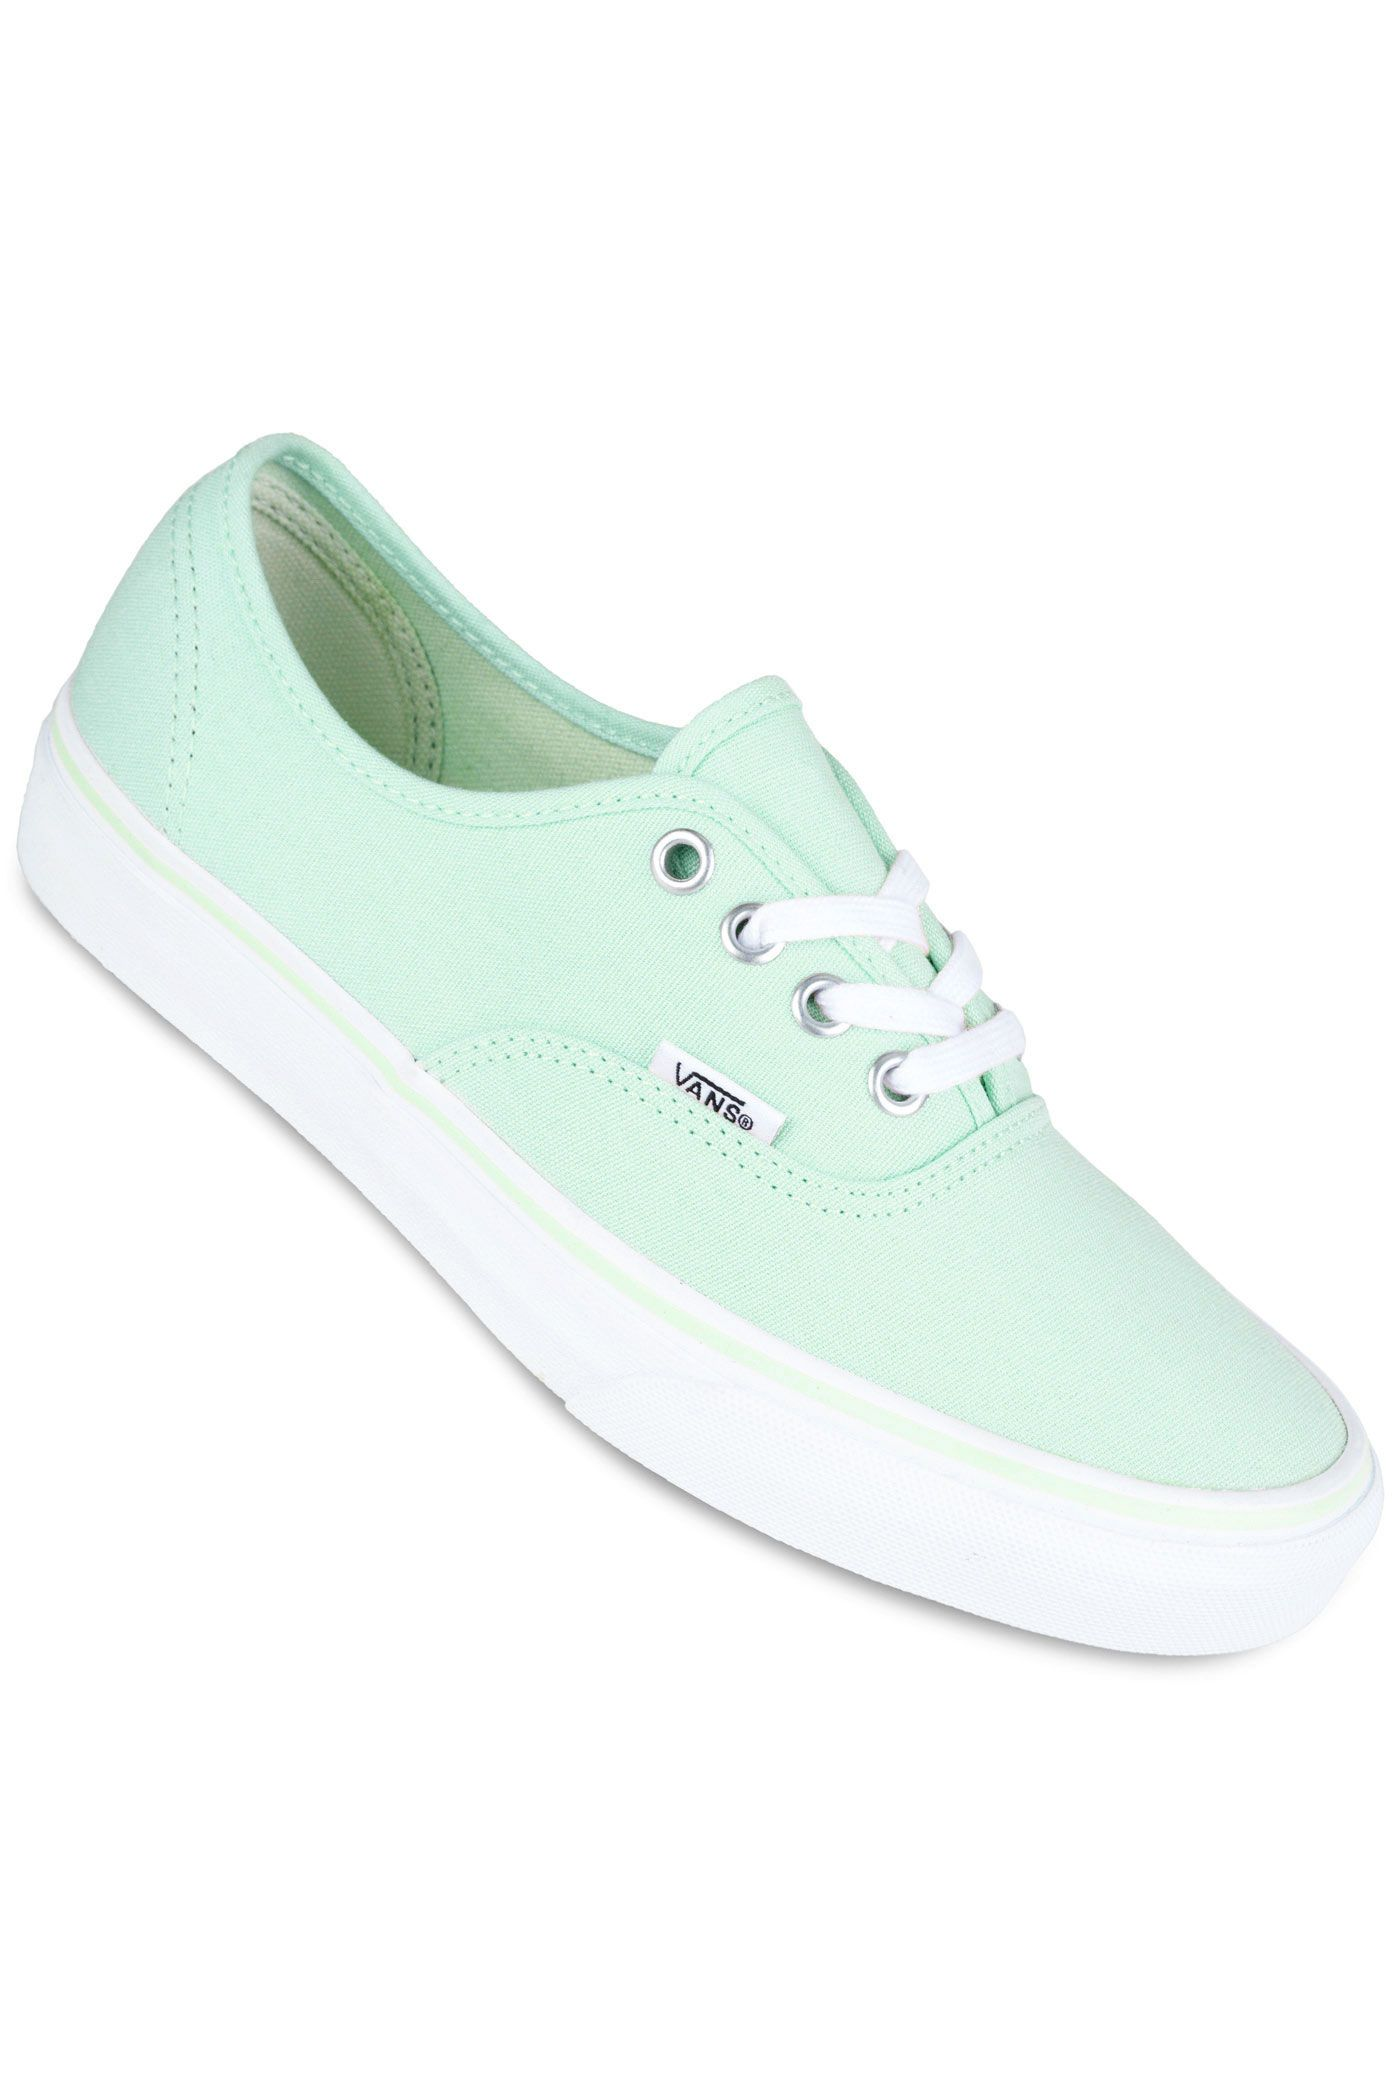 218d617d59 Vans Authentic Shoes women (california) | cuteness | Vans shoes ...